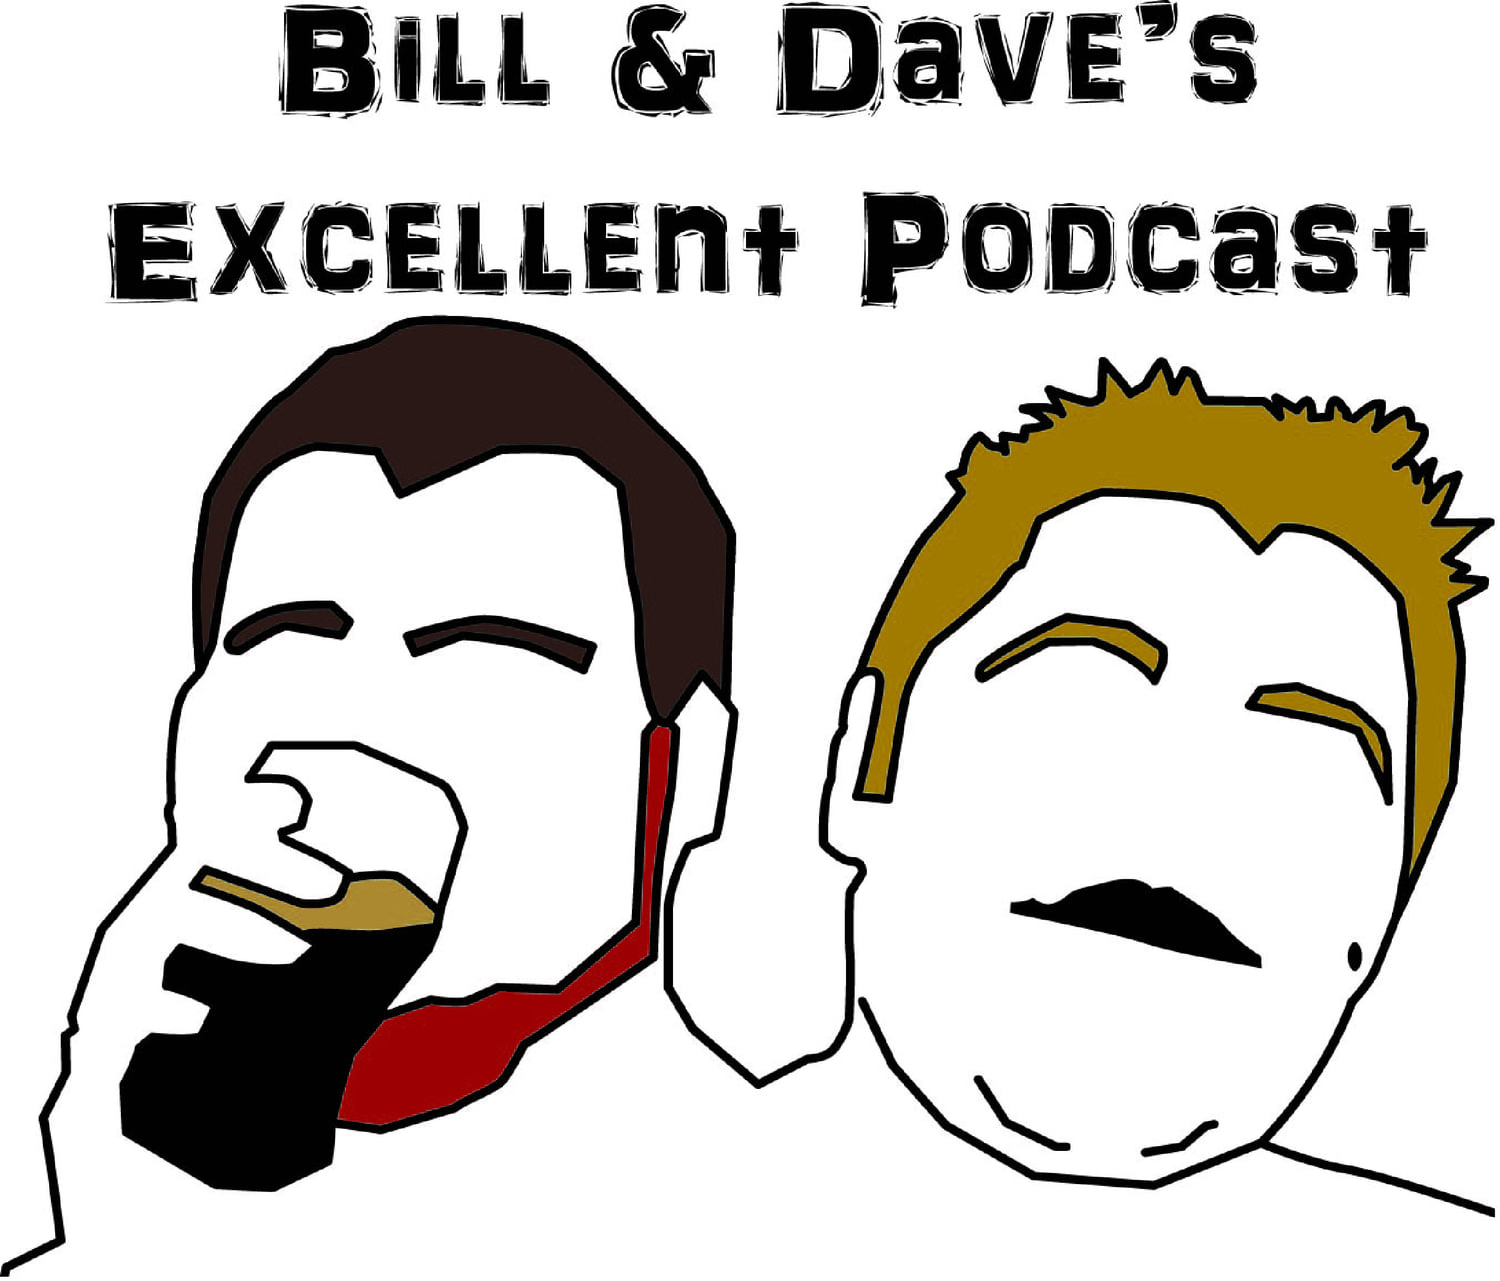 Bill & Dave's Excellent Podcast - DavidEastham.com